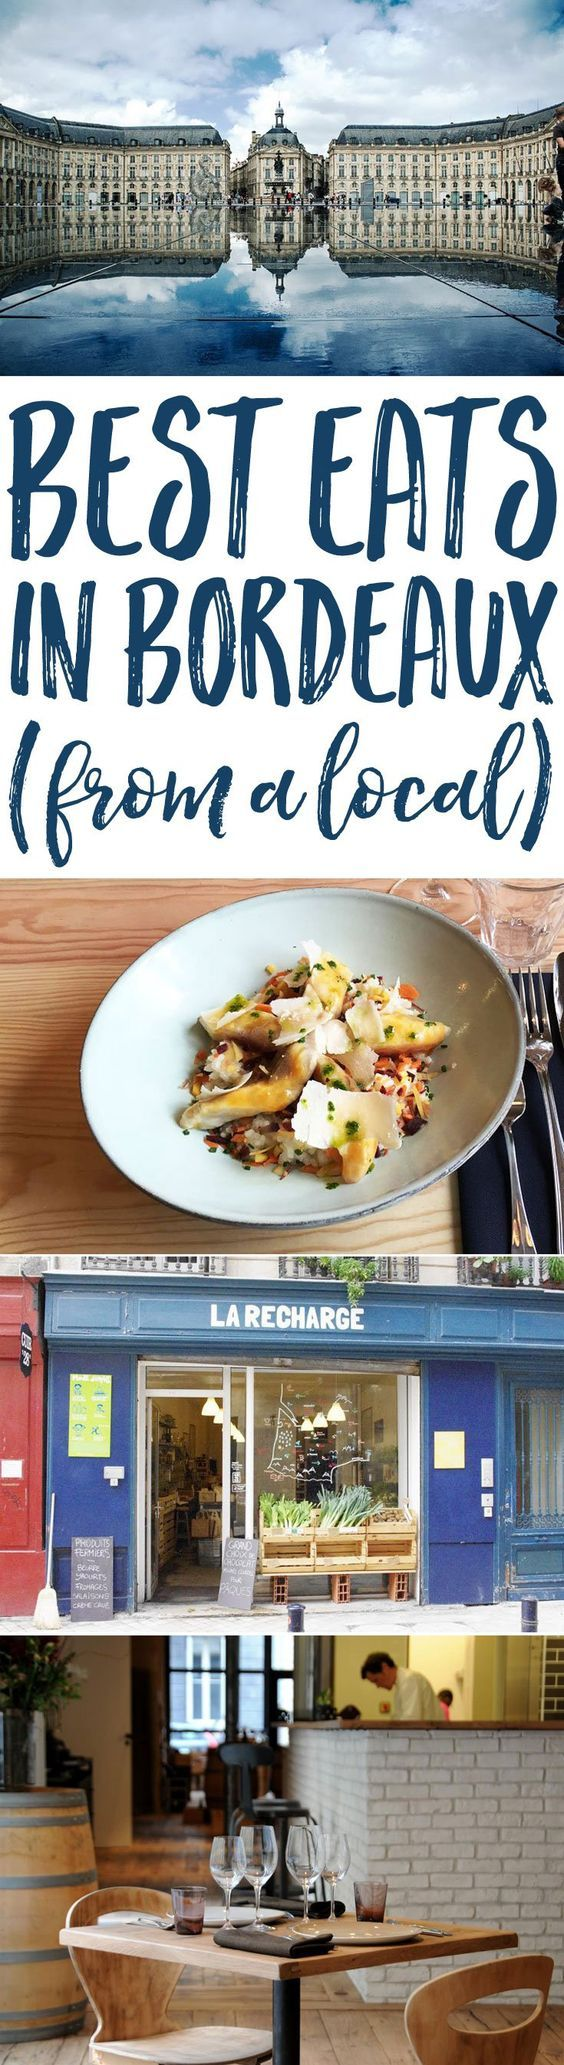 Planning a trip to the Bordeaux wine country? Don't miss this selection of the best eats in Bordeaux to wine and dine like a local Bordelaise!